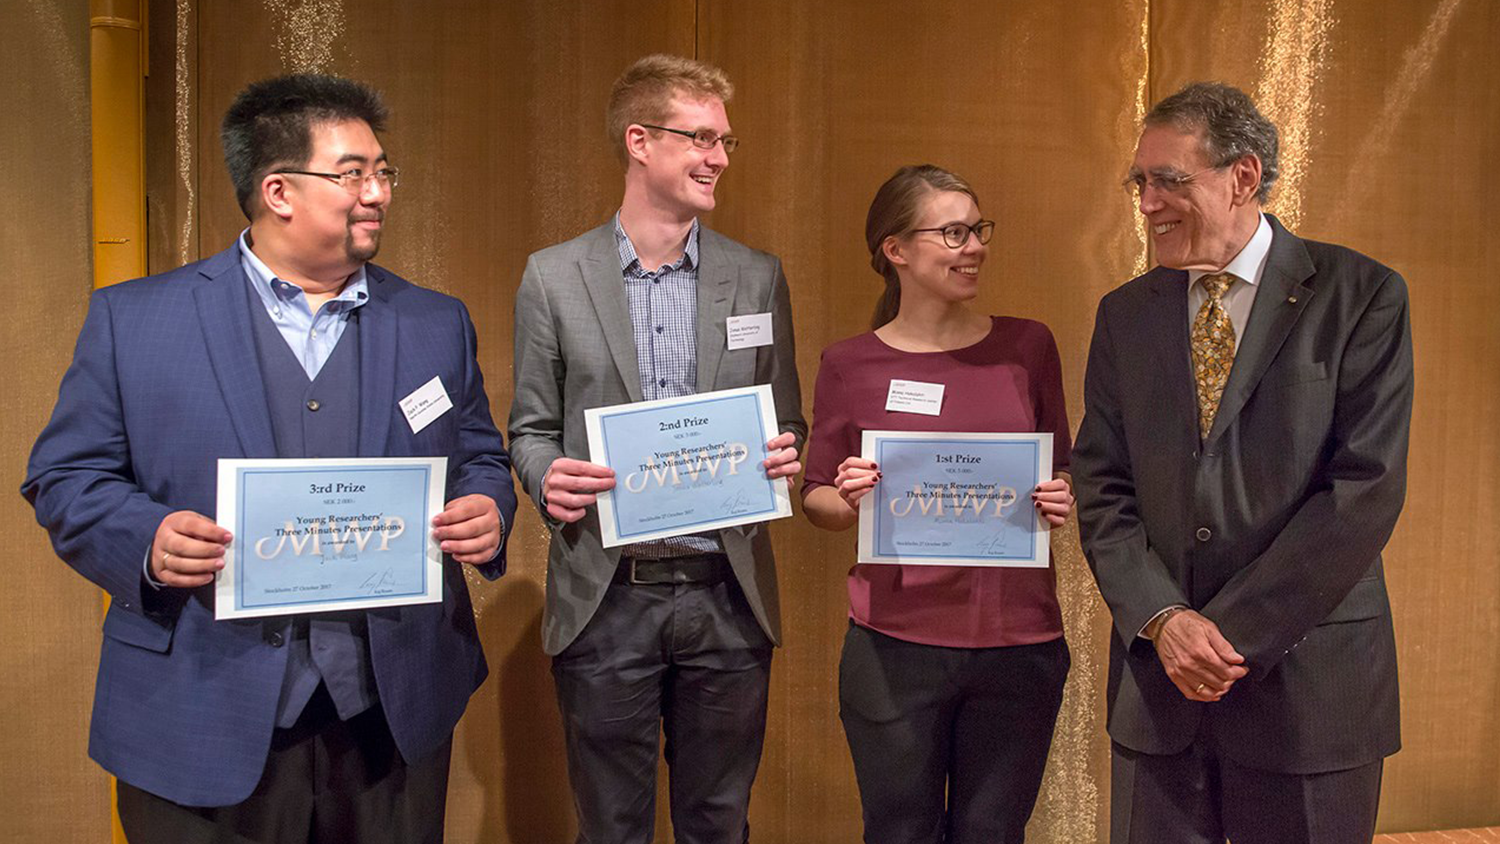 Jack Wang (far left) Young Researchers Symposium and Poster Presentation at Wallenberg Prize Presentation